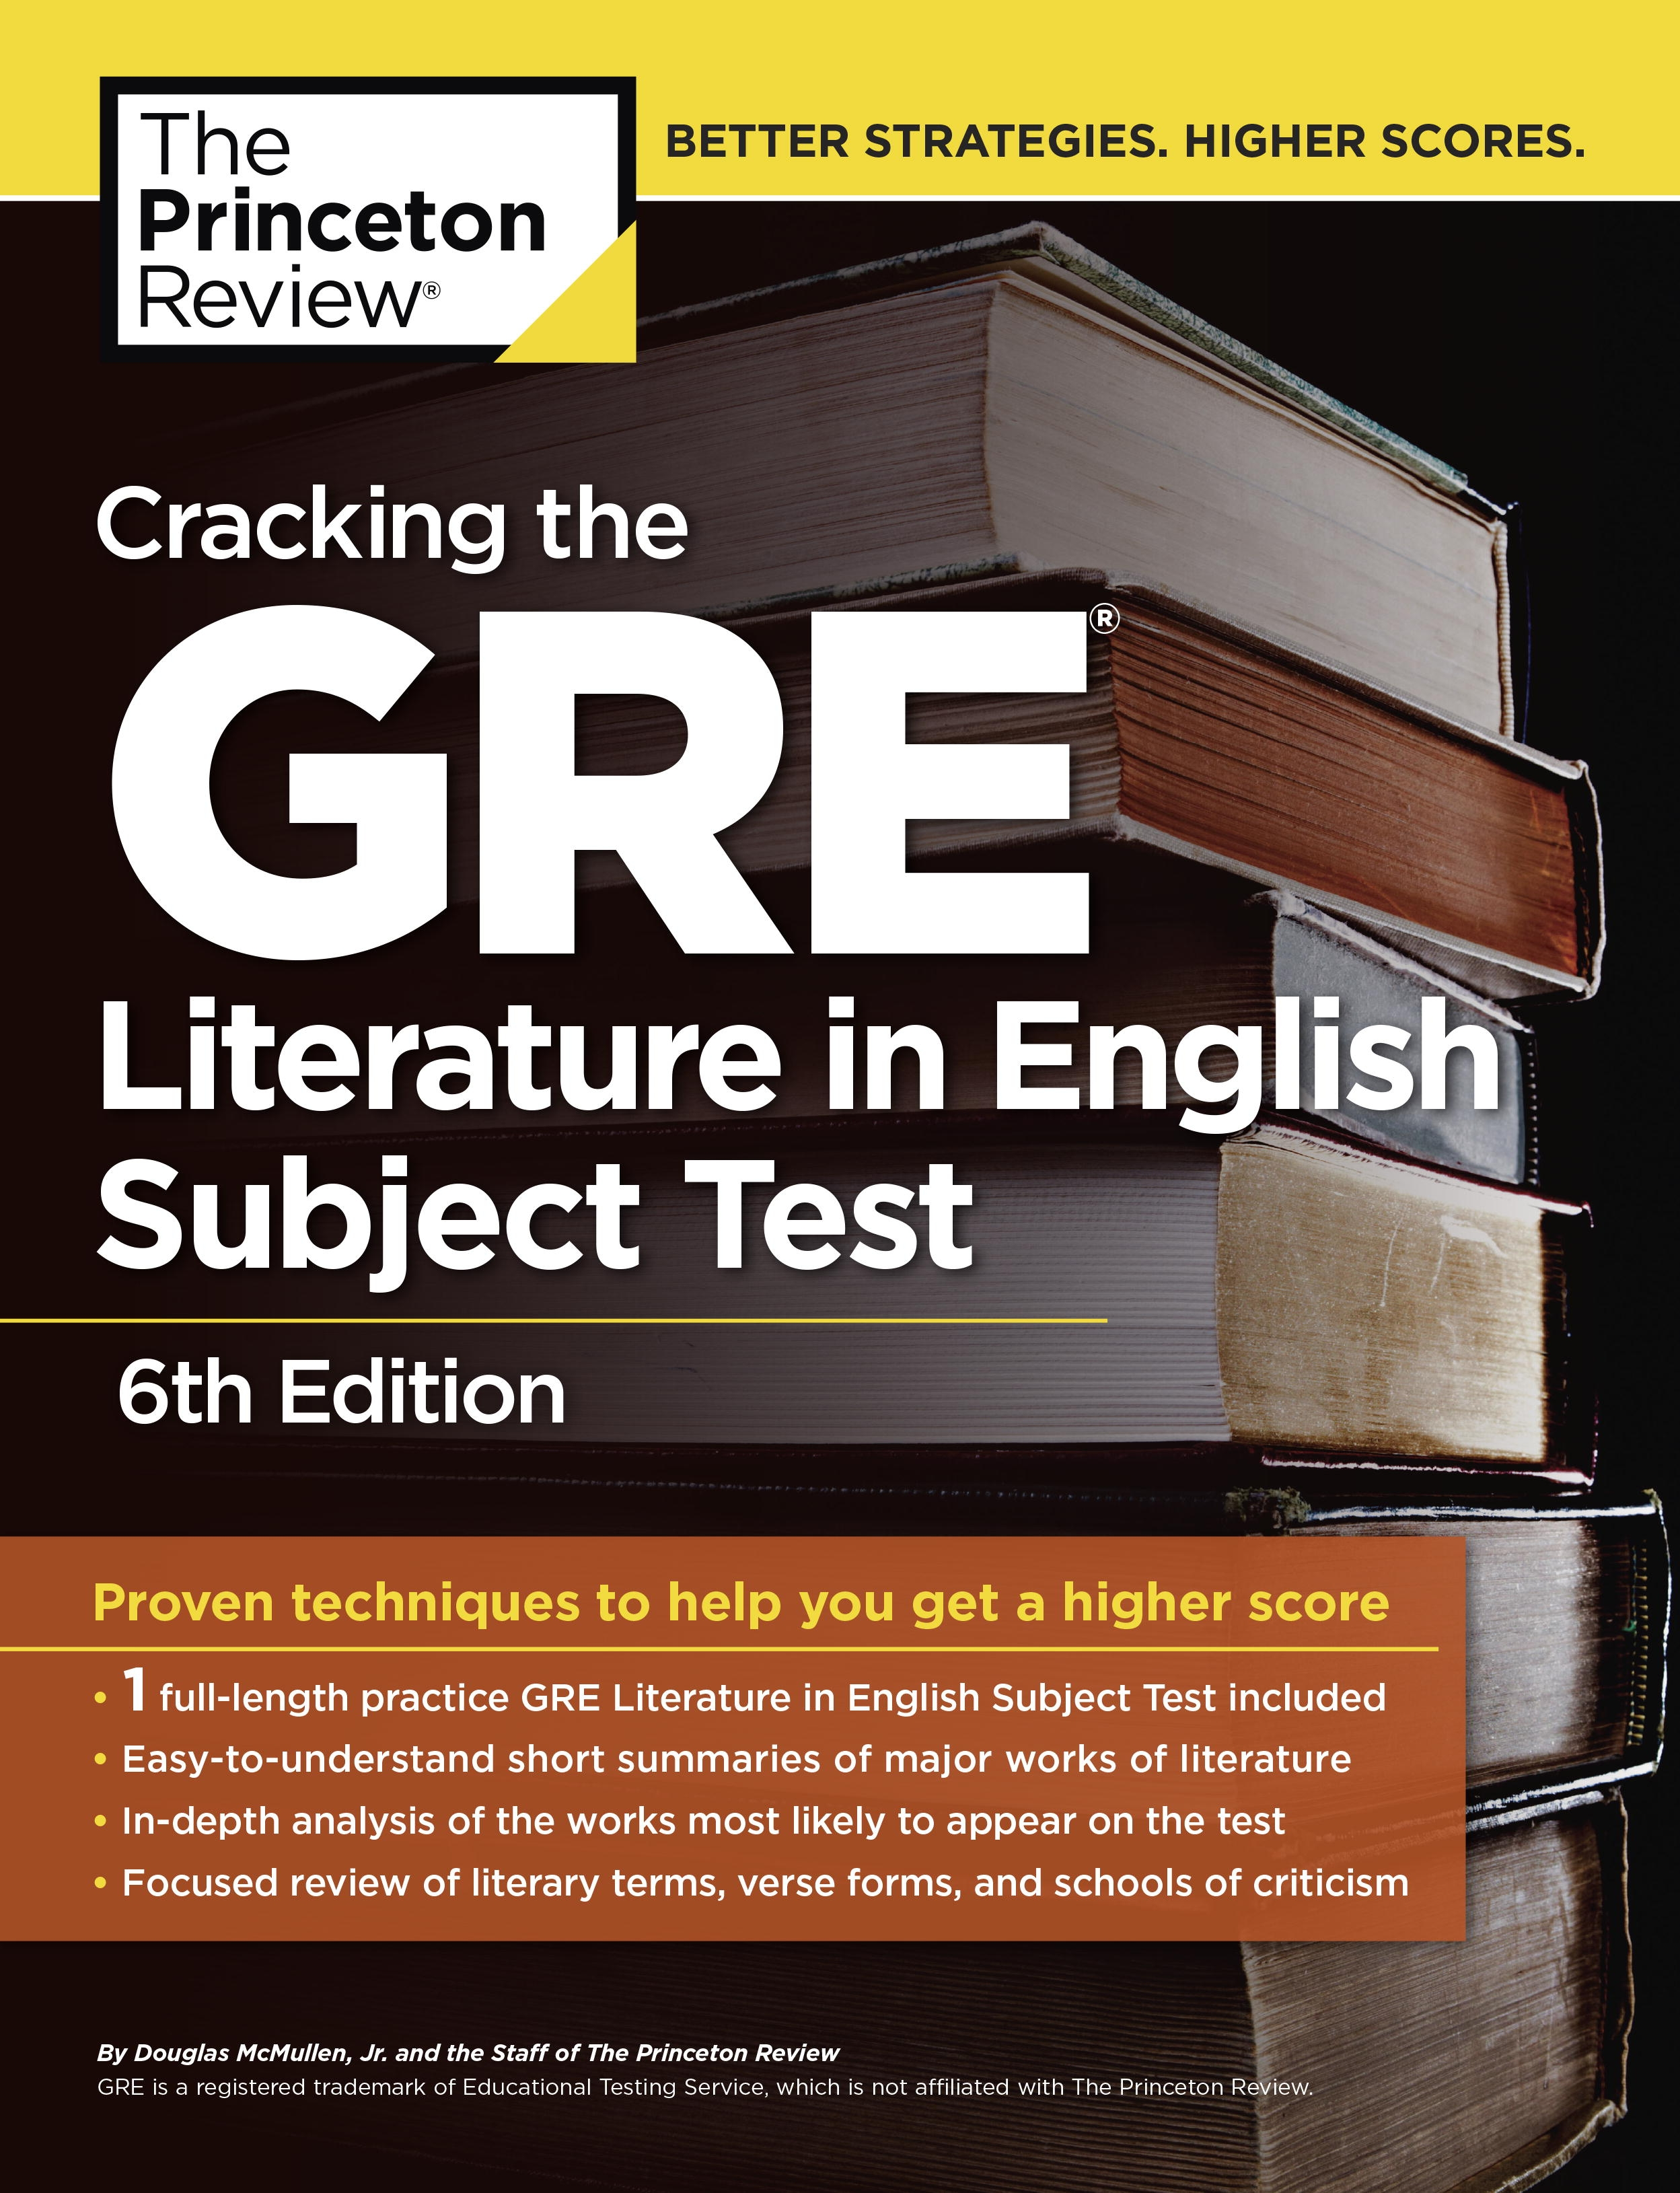 Cracking The Gre Literature In English Subject Test, 6th Edition. By Princeton  Review